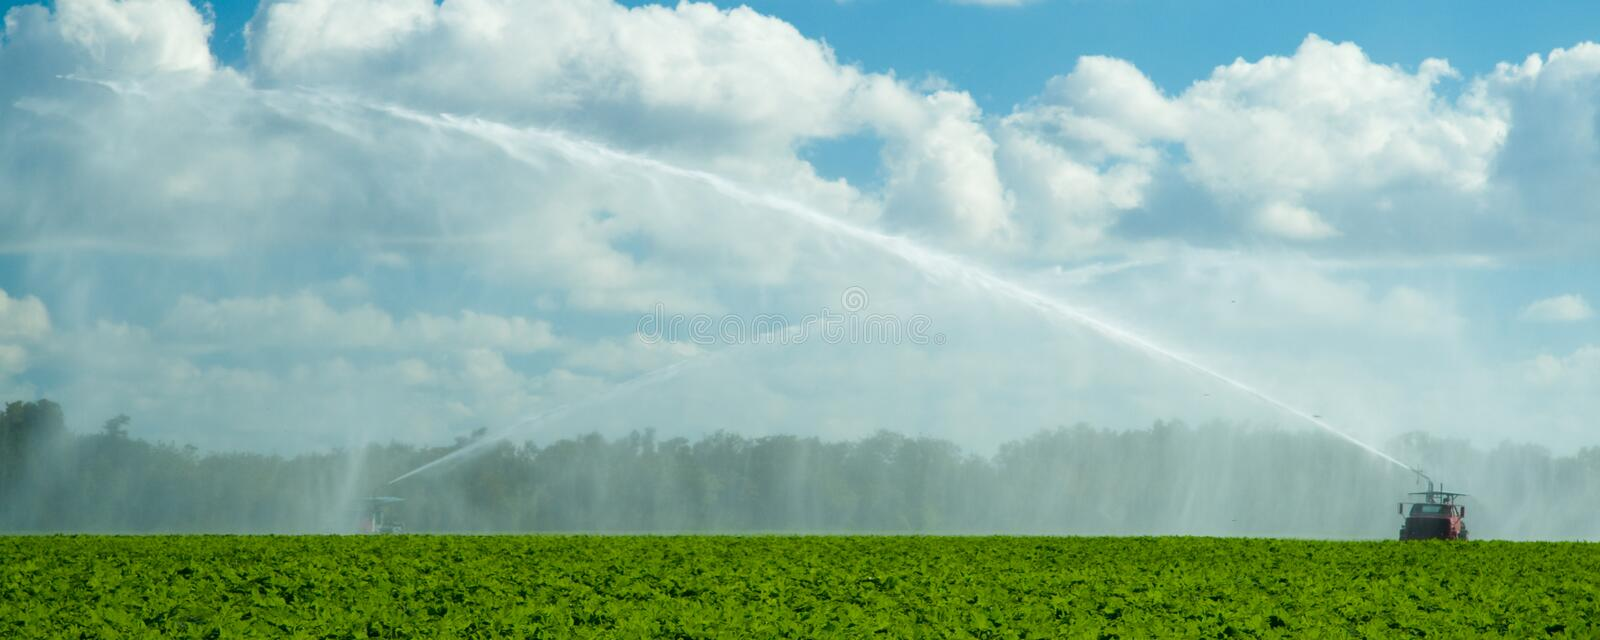 Trucks irrigating green field. Scenic view of trucks irrigating green field in countryside with cloudscape background royalty free stock photography